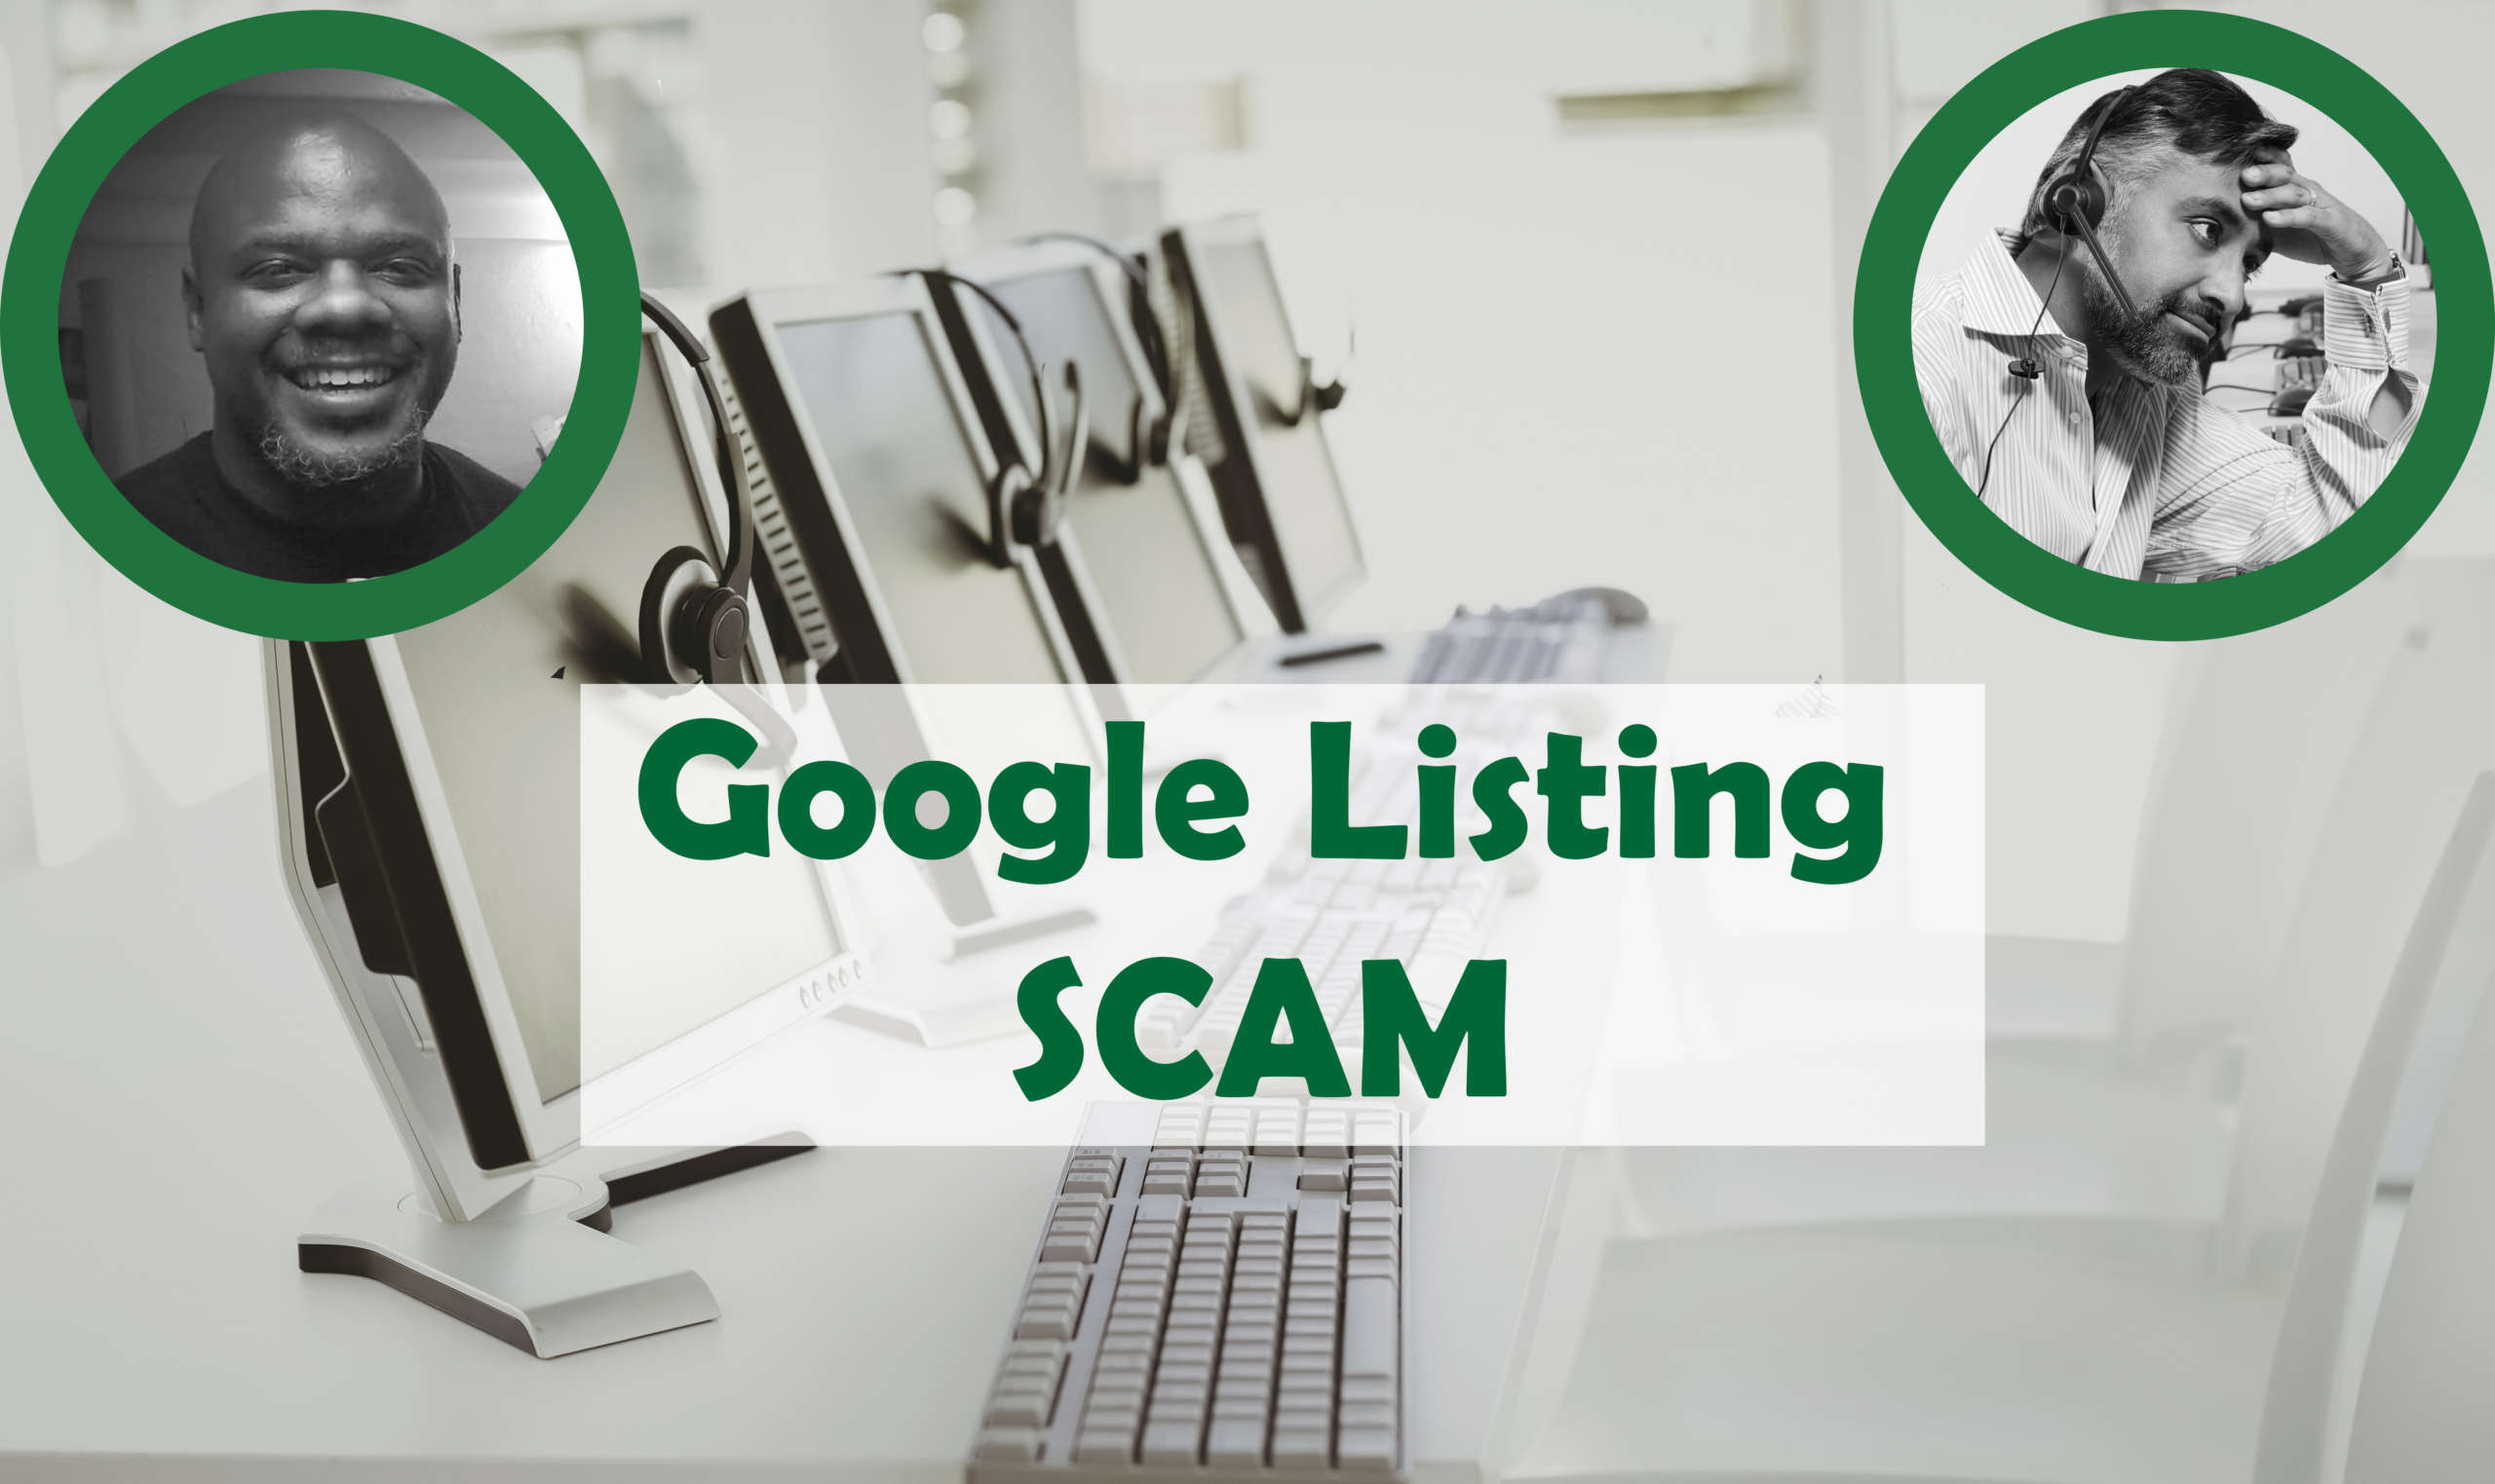 Google Listing Scam – Pay Attention